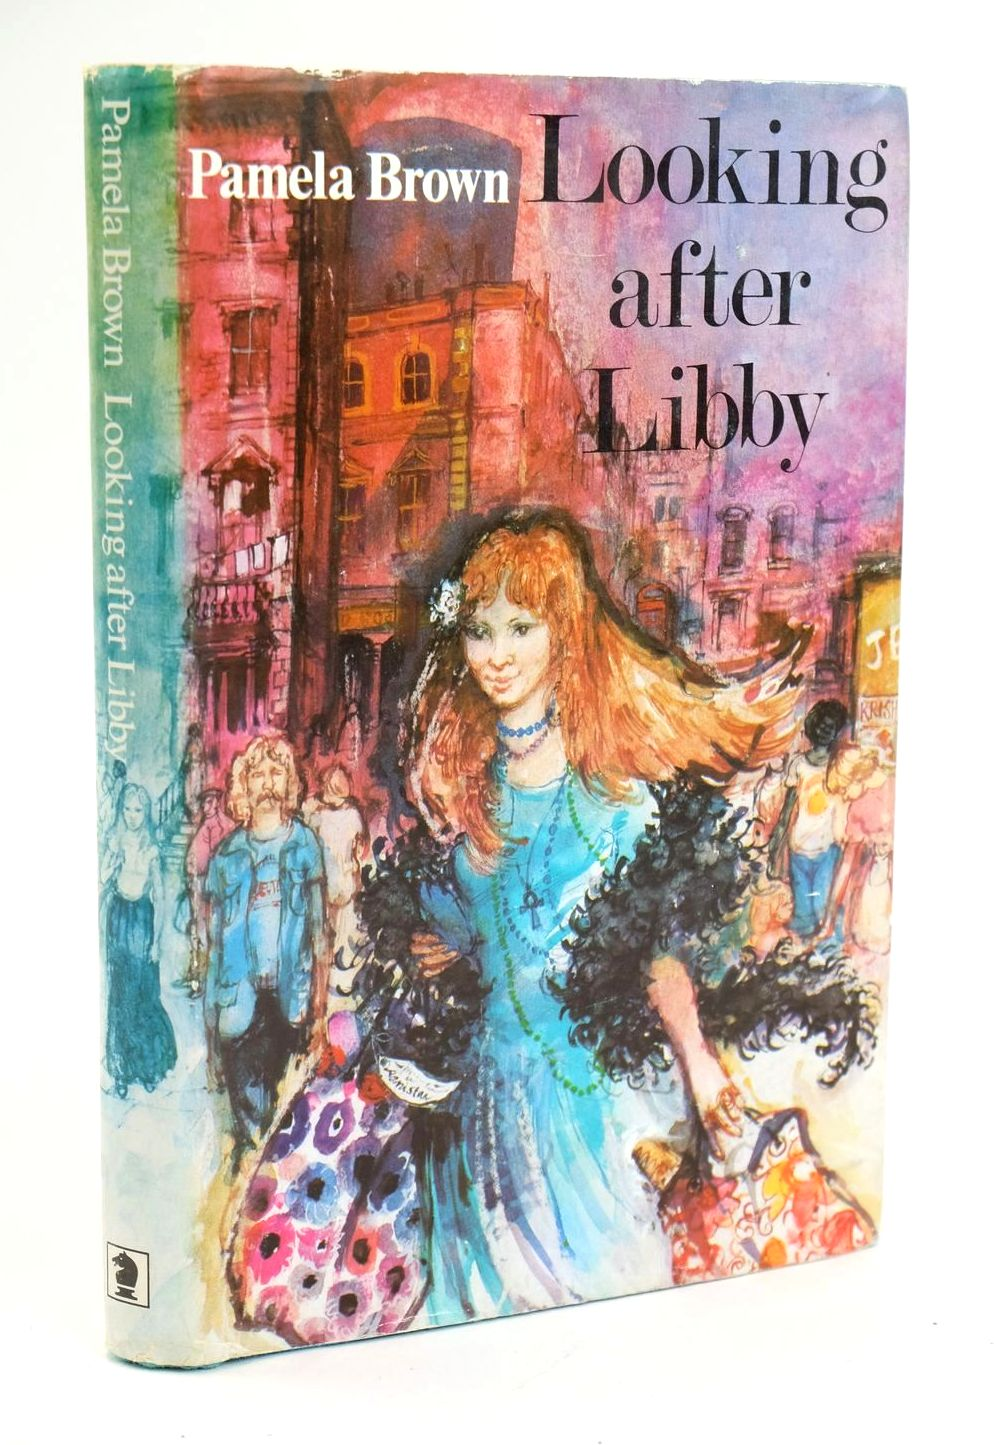 Photo of LOOKING AFTER LIBBY written by Brown, Pamela published by Brockhampton Press (STOCK CODE: 1319315)  for sale by Stella & Rose's Books